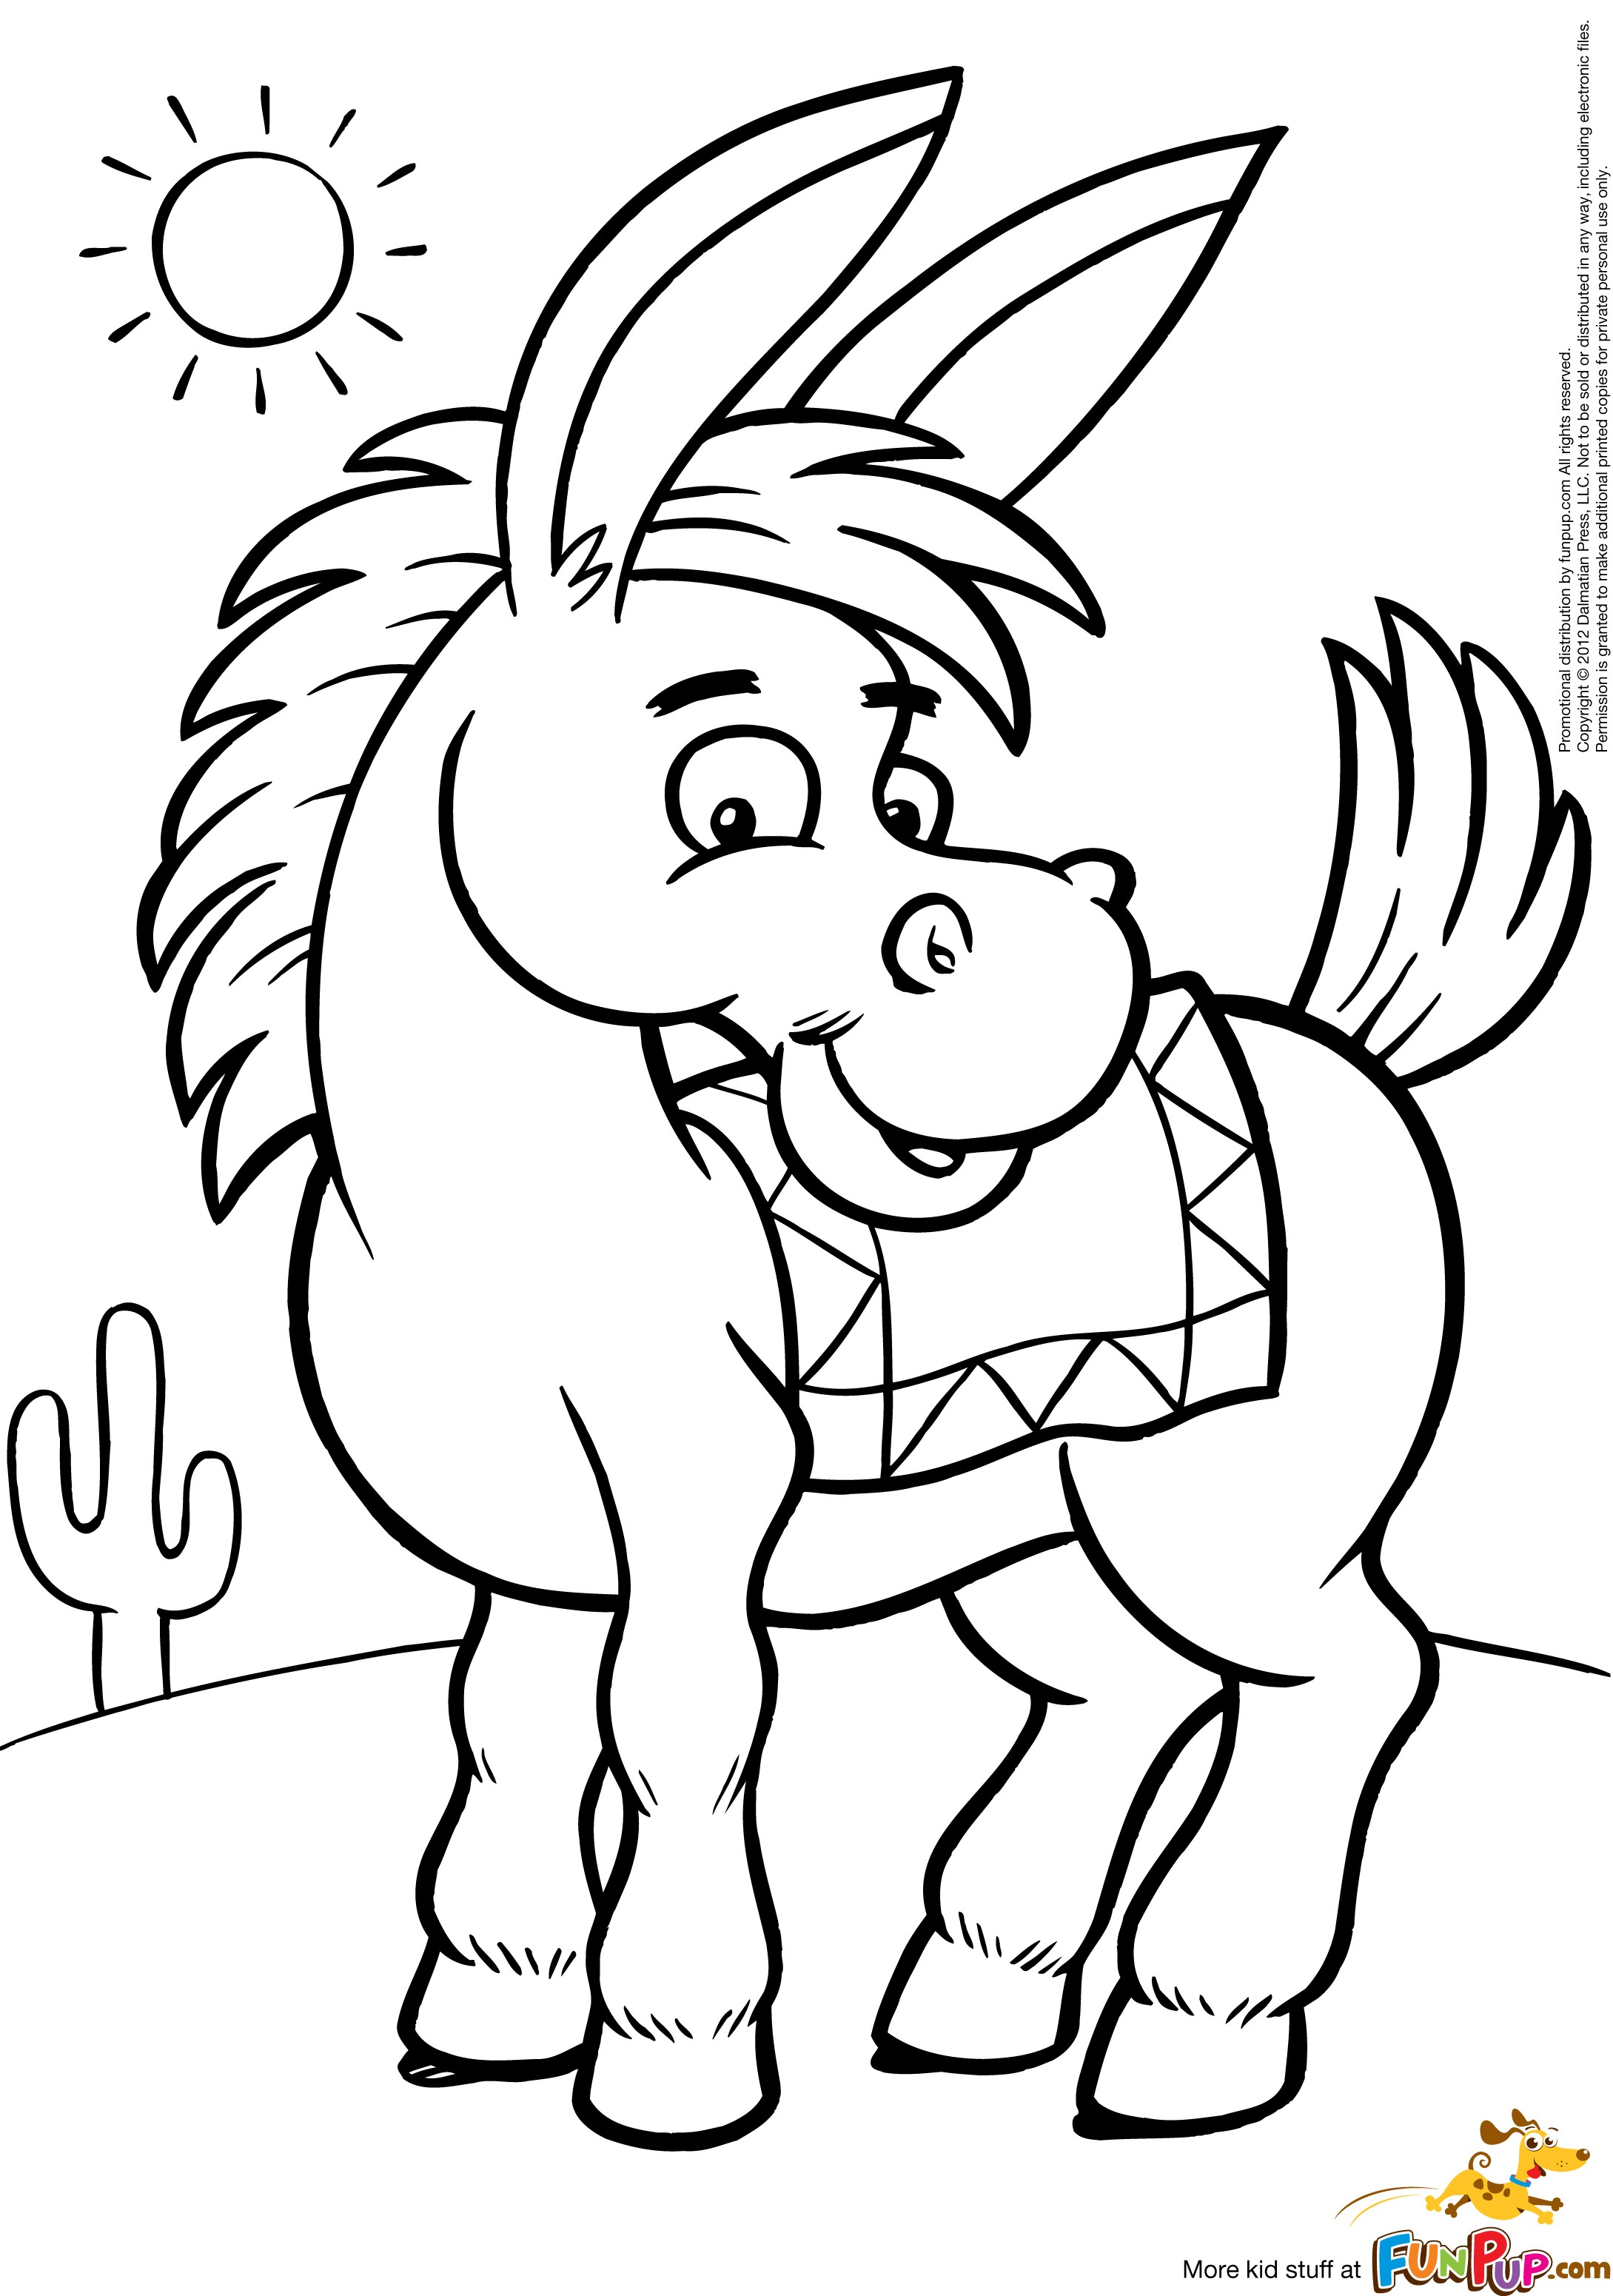 donkey coloring pages to download and print for free. Black Bedroom Furniture Sets. Home Design Ideas